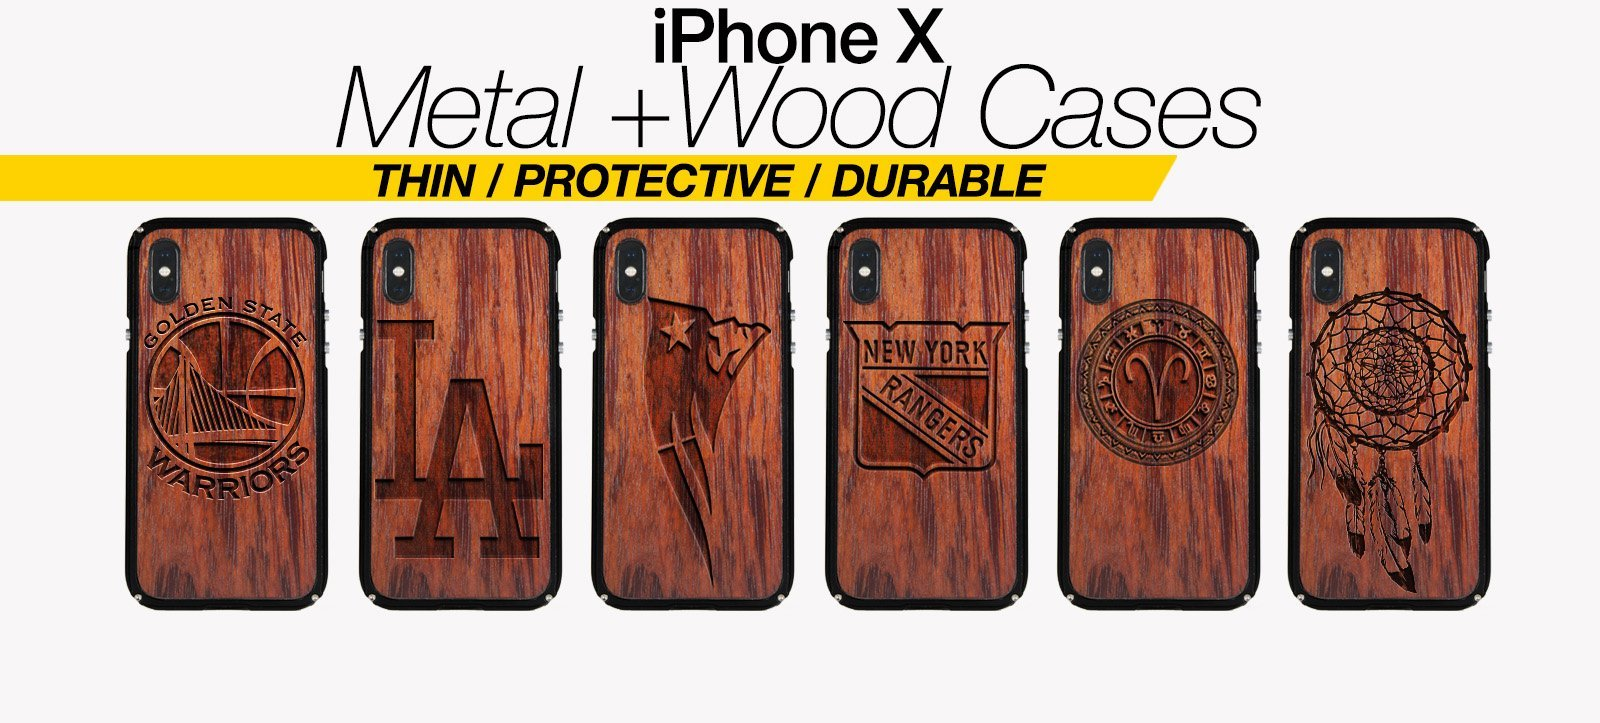 Wood And Metal iPhone X Cases Best Wood And Metal iPhone X Covers Thin Protective Eco Friendly